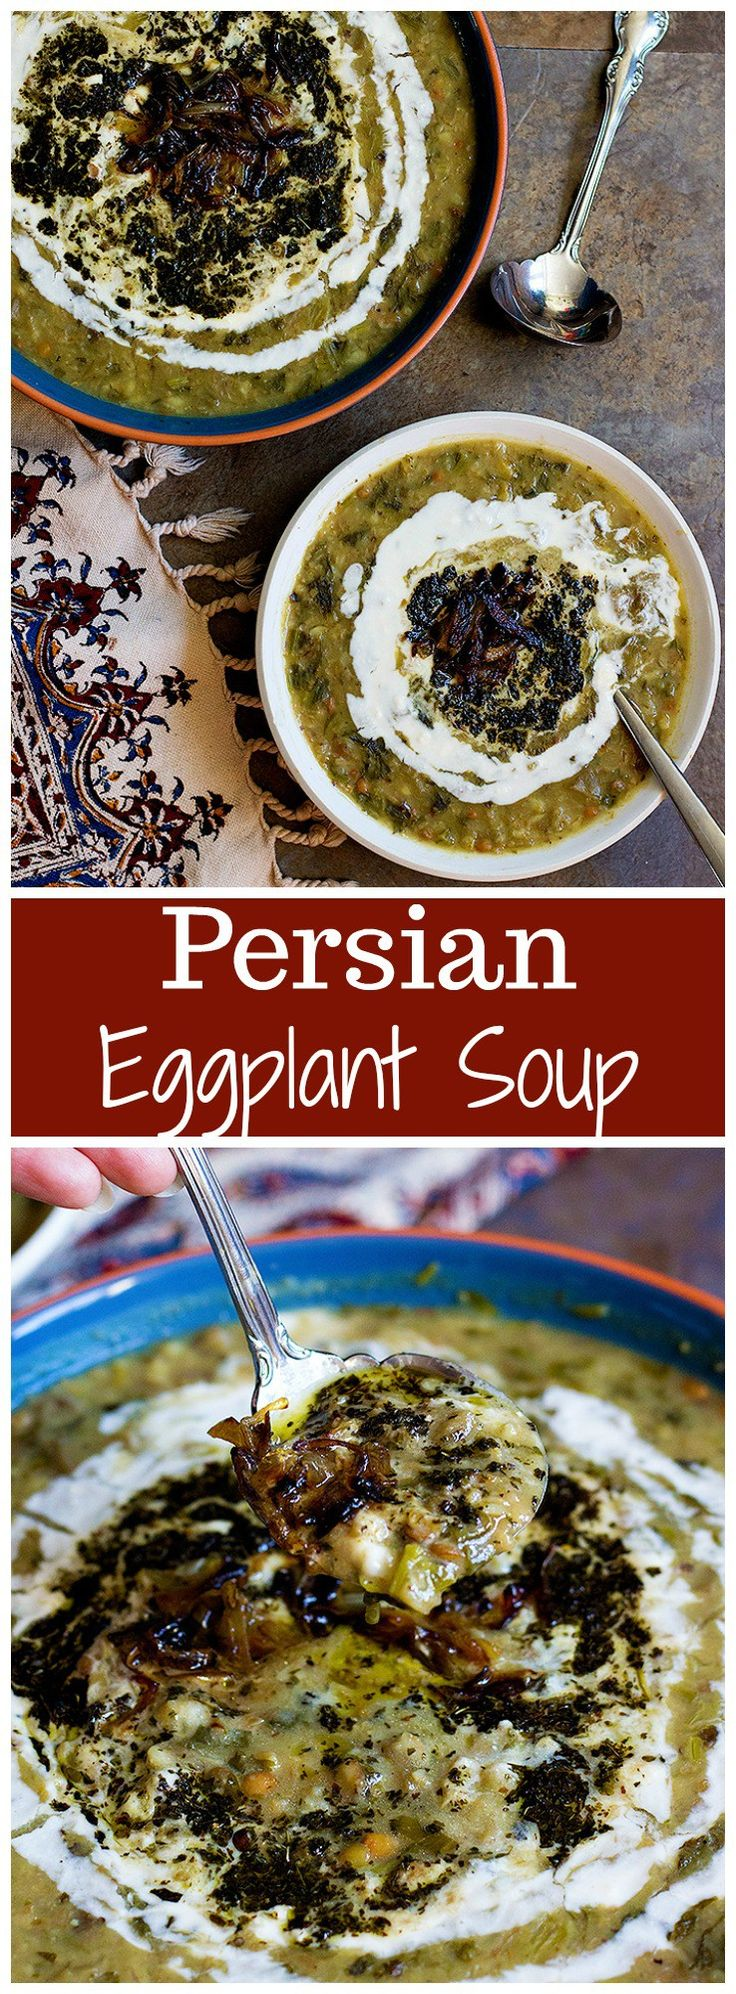 Eggplant Soup | Ash-e Bademjan | Persian Recipes |  Persian Soup |  Persian Food | Winter Soup